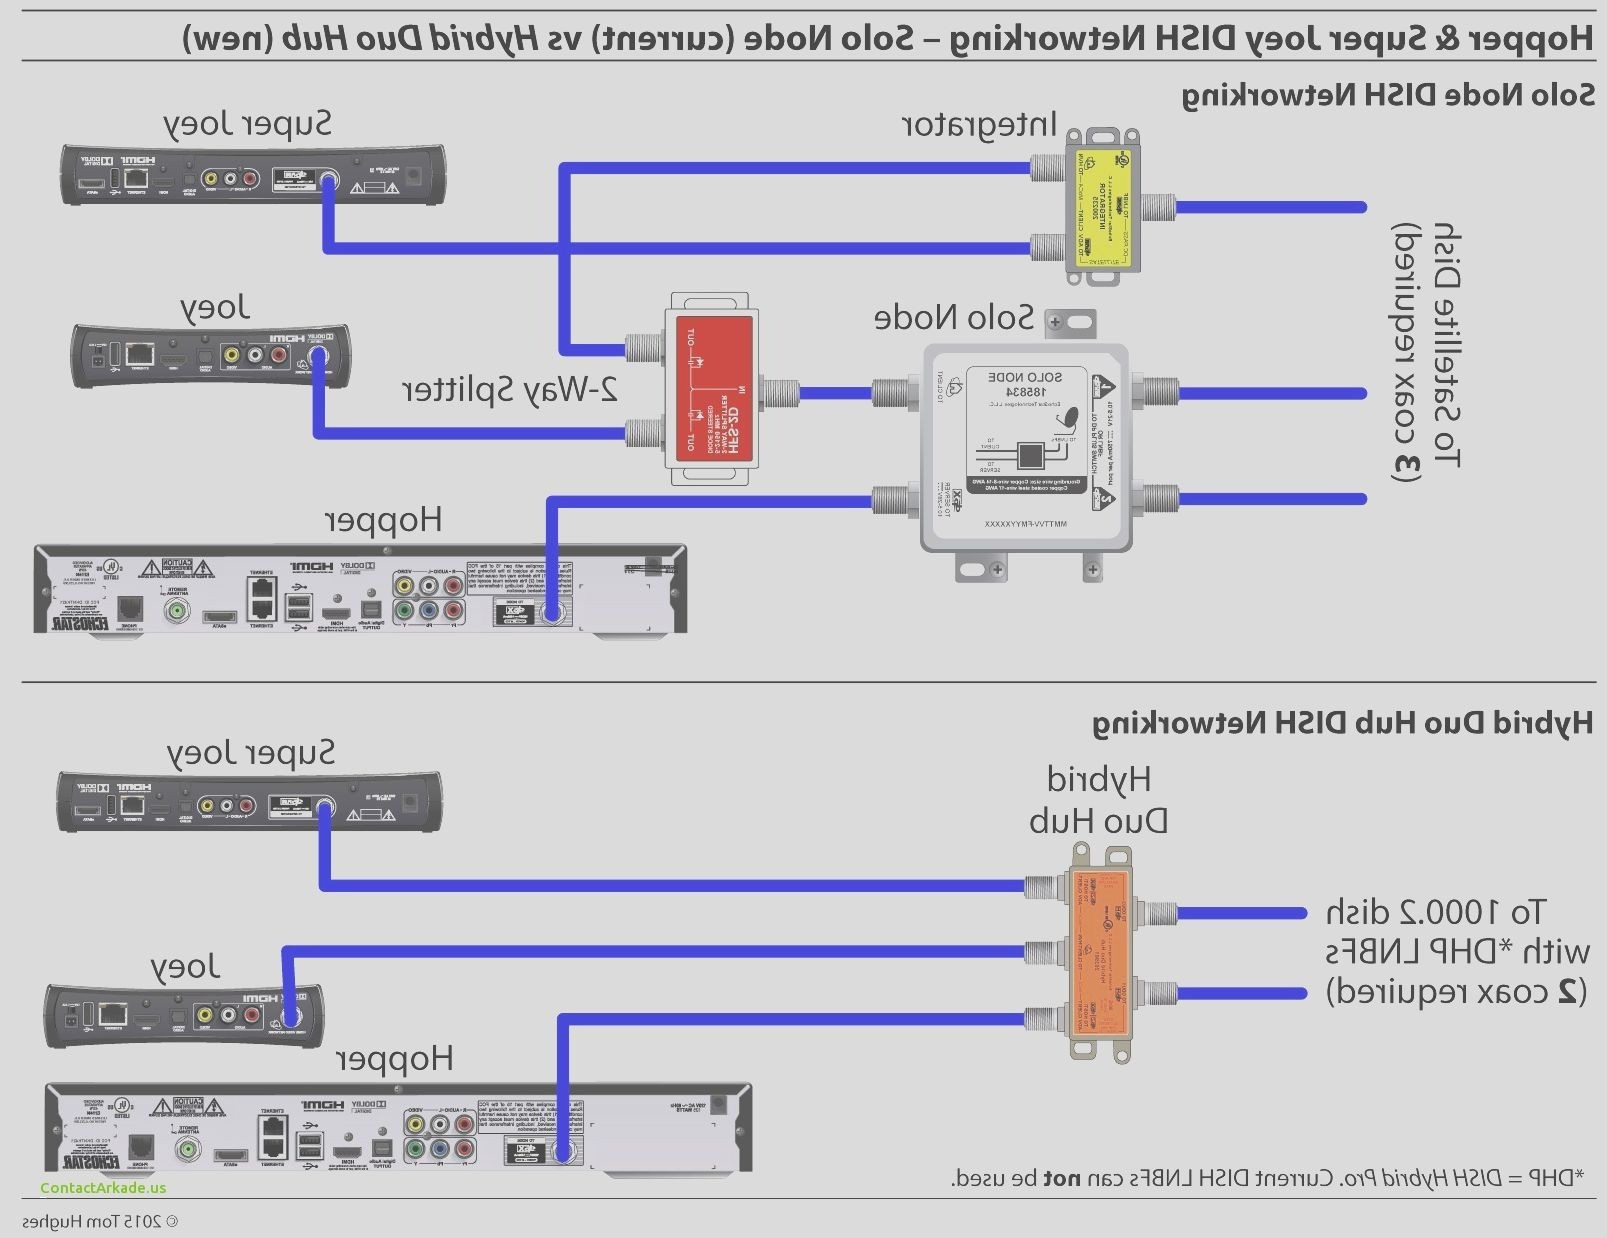 wiring diagram for cat5 cable Download-Wiring Diagram For A Cat5 Cable New Cat5e Wire Diagram New Ethernet Cable Wiring Diagram New Od Wiring 2-j